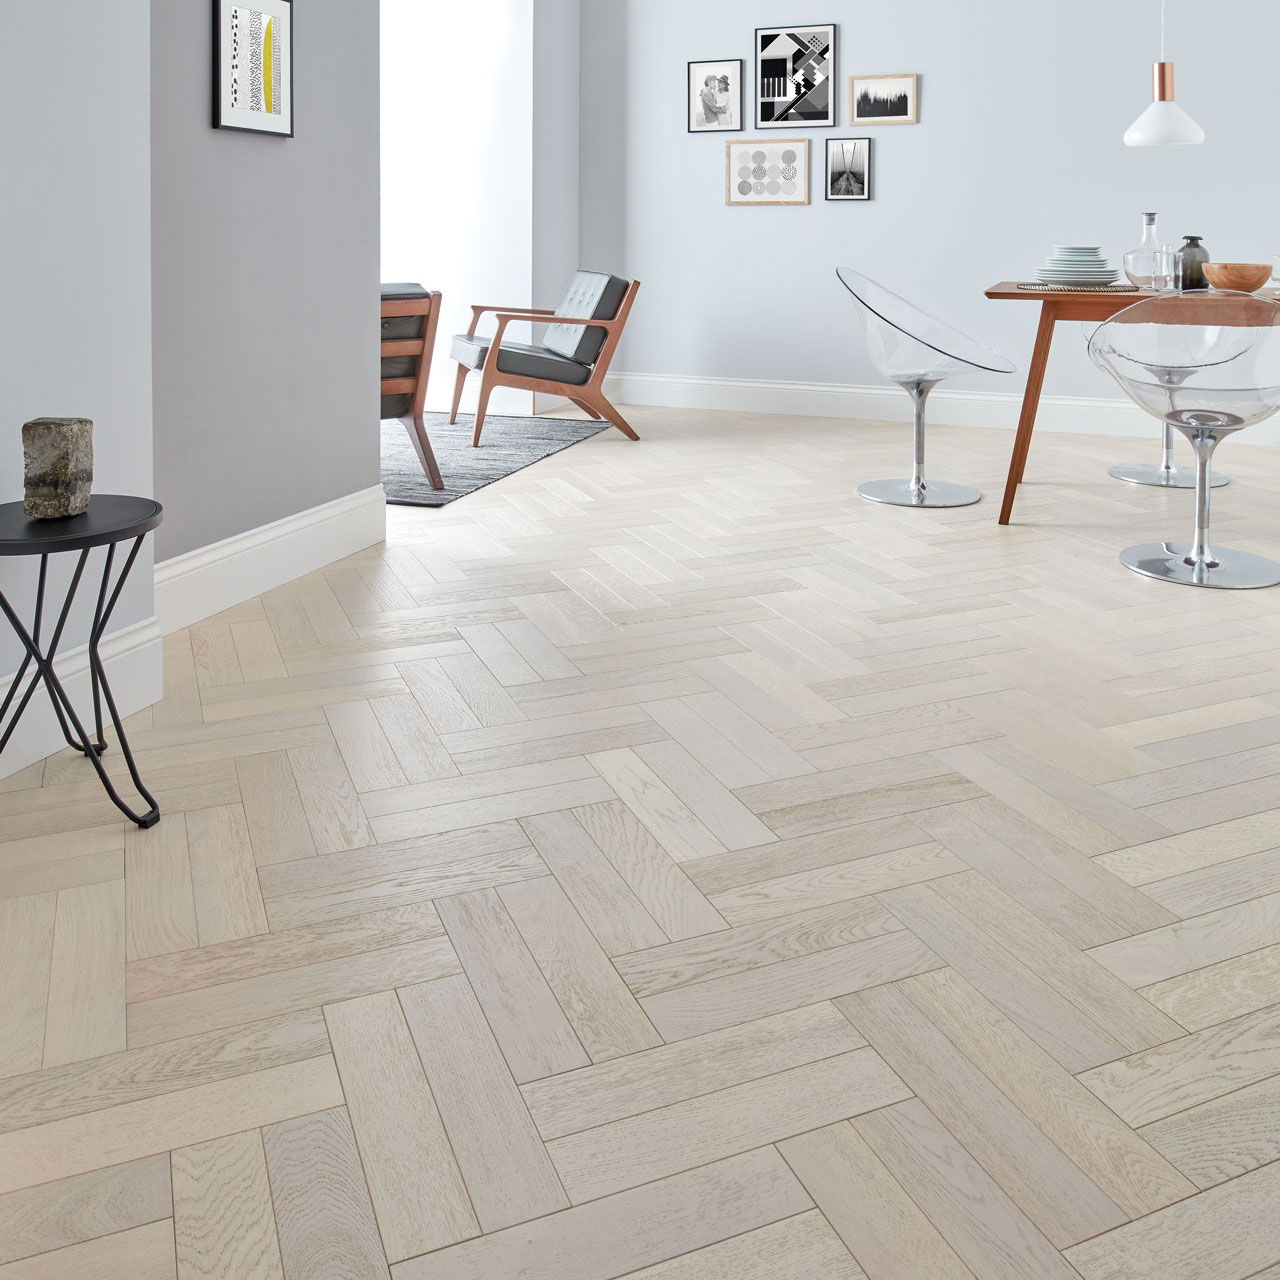 Kitchen Tile Flooring - Selecting That Perfect Type of Flooring